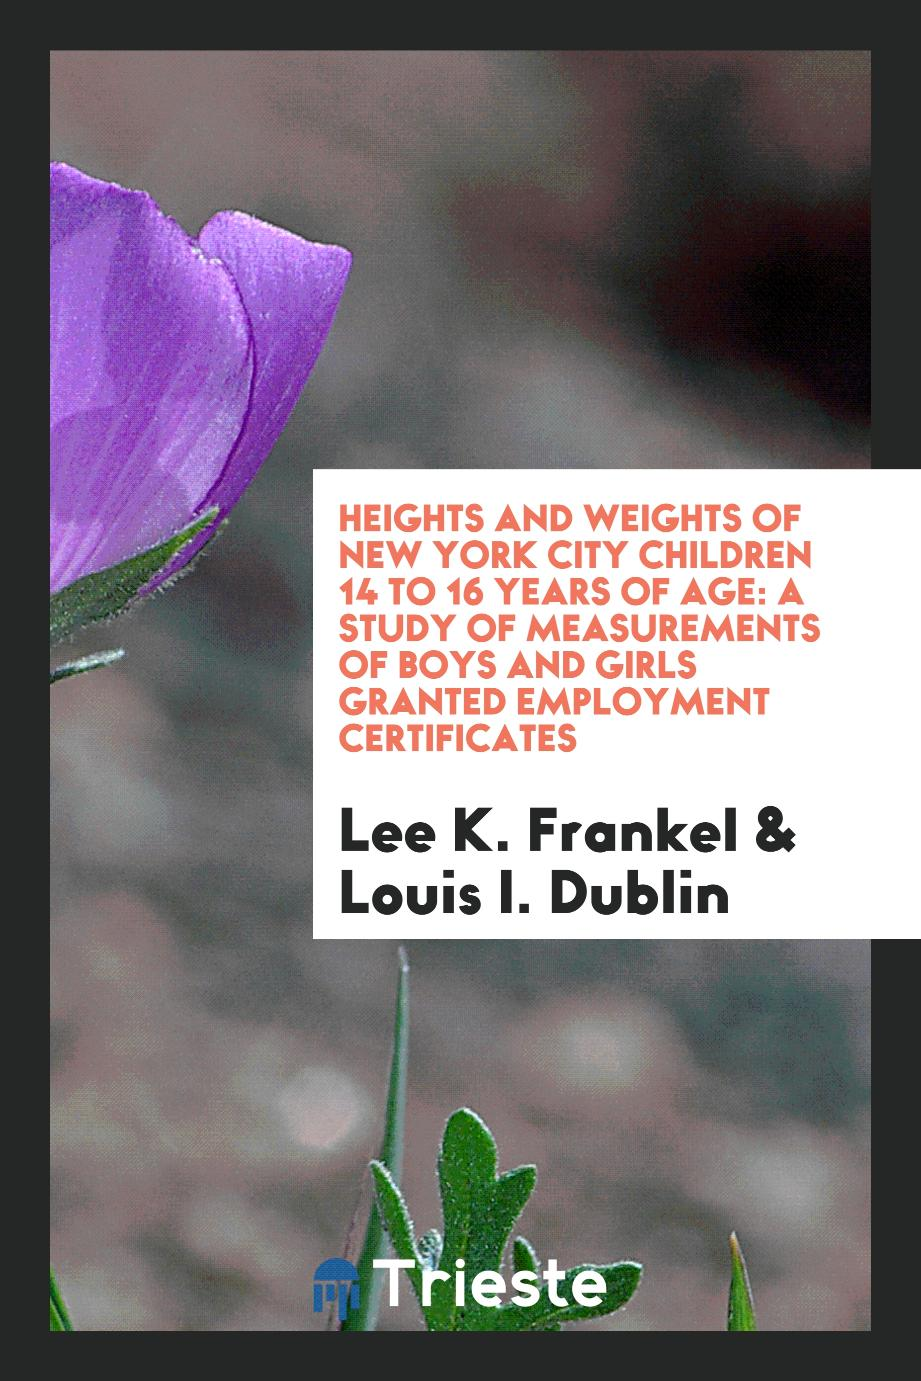 Heights and Weights of New York City Children 14 to 16 Years of Age: A Study of Measurements of Boys and Girls Granted Employment Certificates